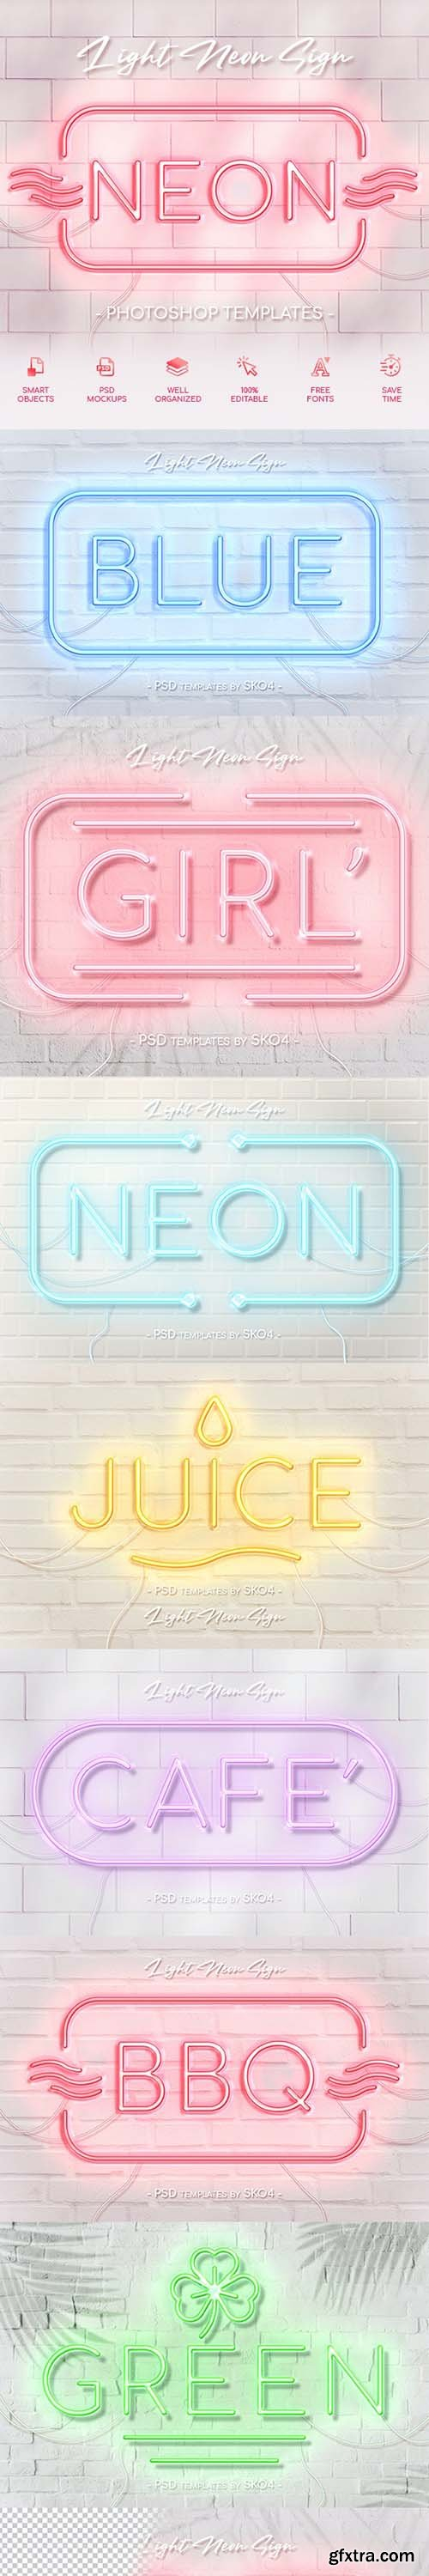 GraphicRiver - Light Neon Wall Sign 26909218